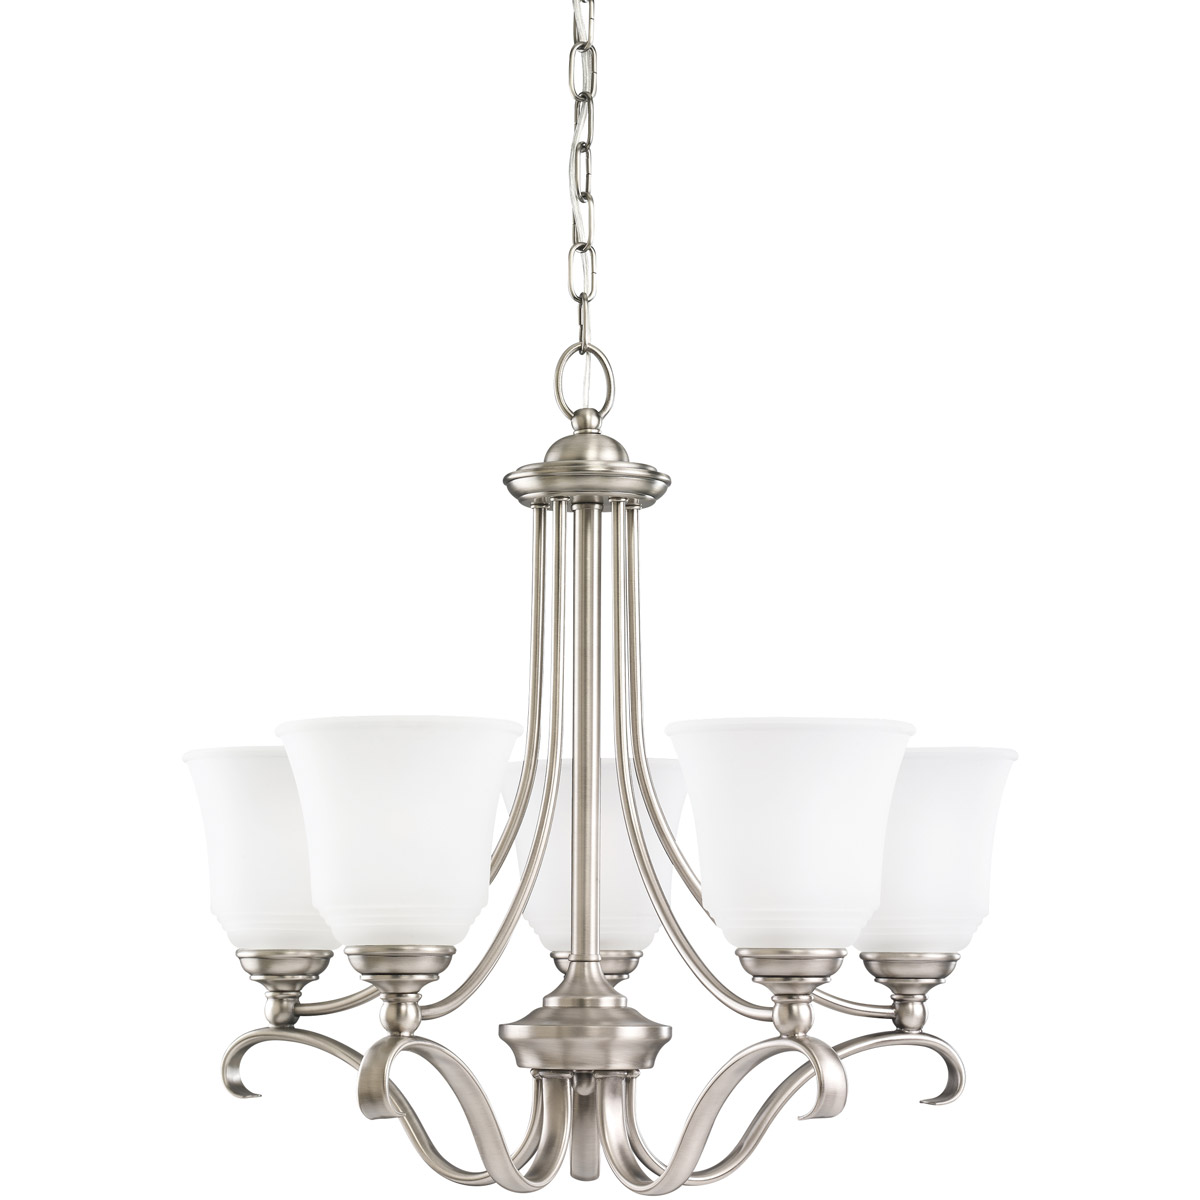 Sea Gull Lighting Parkview 5 Light Chandelier in Antique Brushed Nickel 31380-965 photo